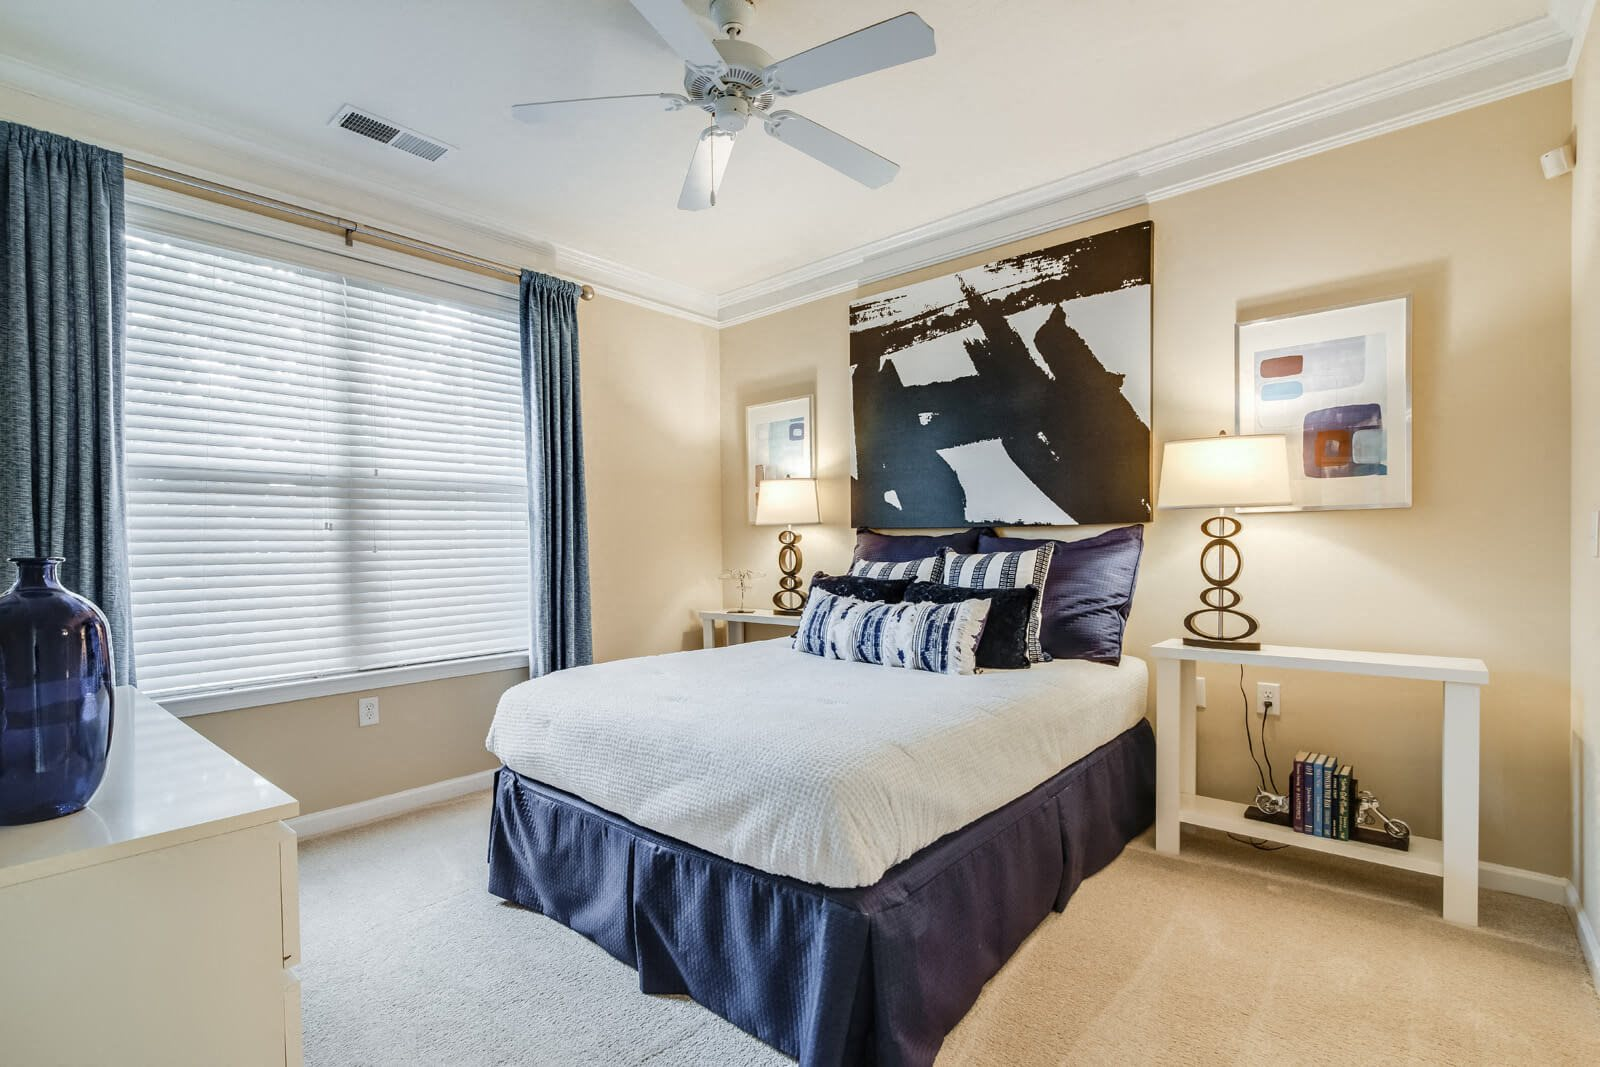 Contemporary Fans in Bedrooms at Windsor at Contee Crossing, 7810 Contee Road, MD